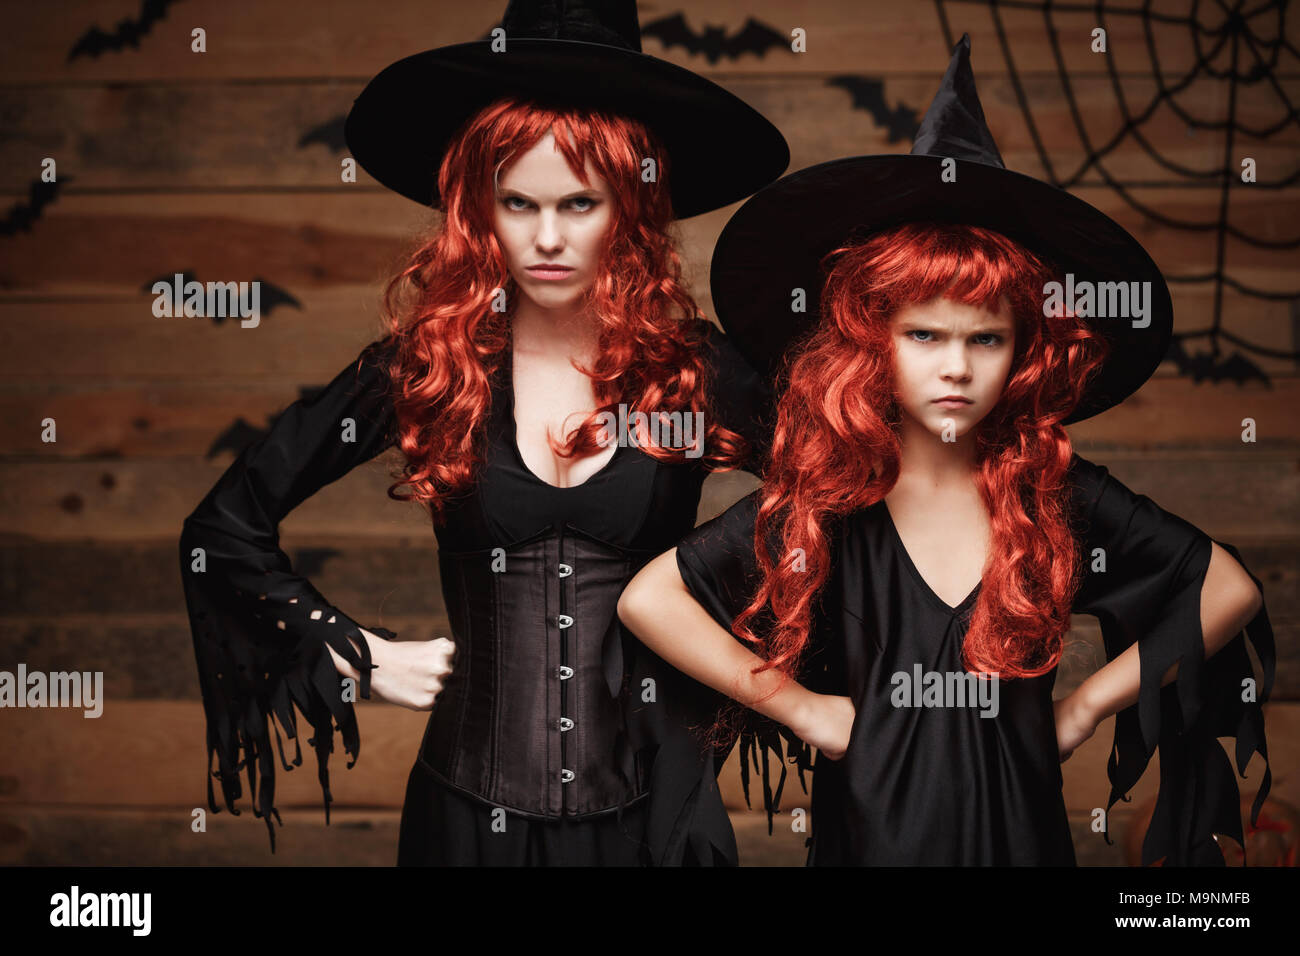 Halloween Concept - Beautiful caucasian mother and her daughter with long red hair in witch costumes  sc 1 st  Alamy & Red Costumes Face Stock Photos u0026 Red Costumes Face Stock Images - Alamy